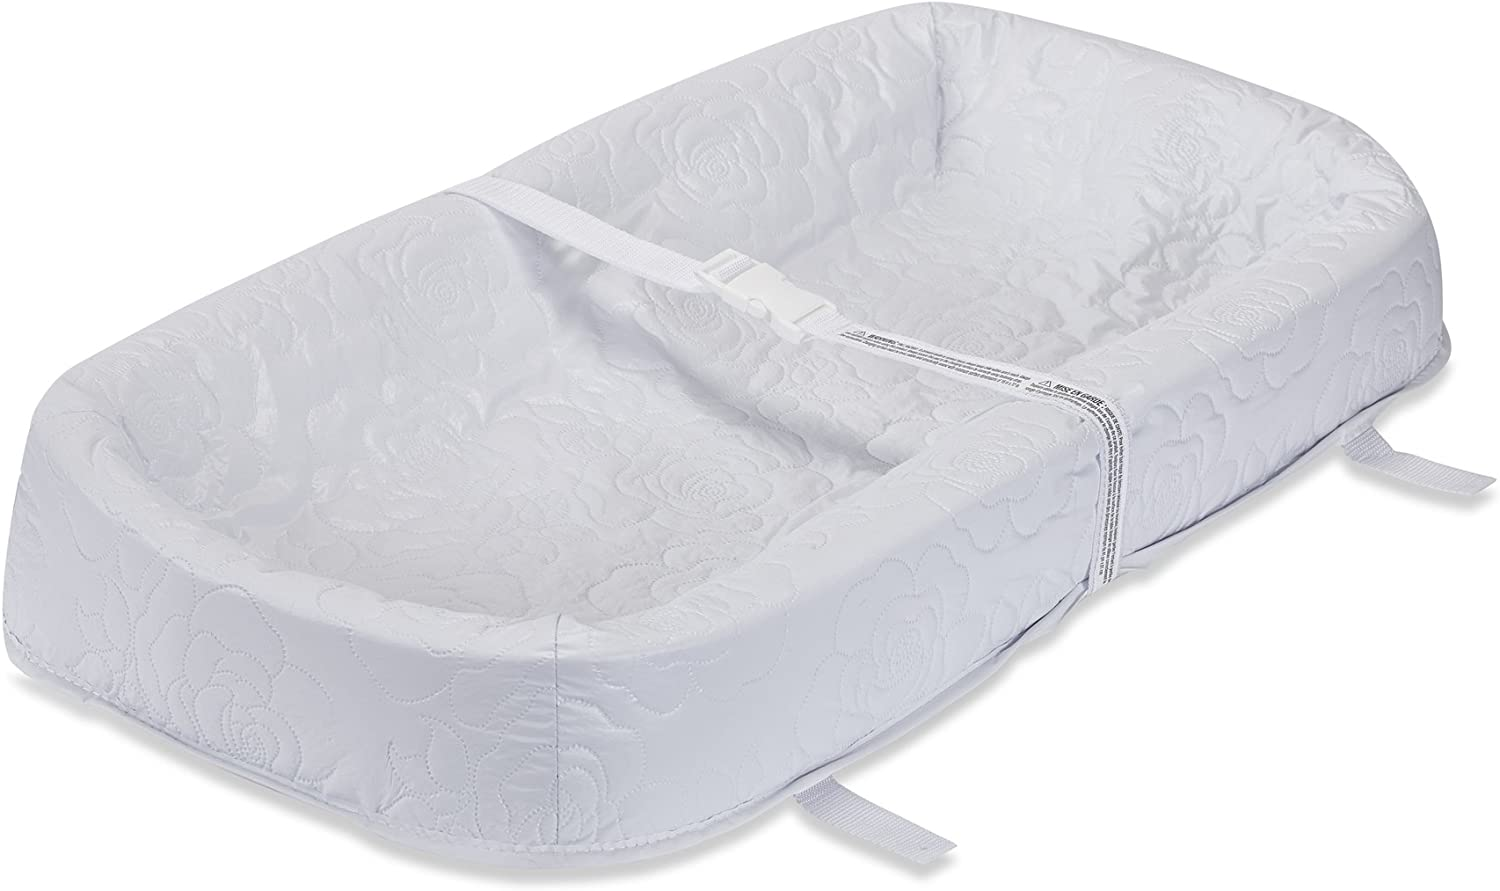 Top 10 Best Portable Changing Pad (2020 Reviews & Buying Guide) 2